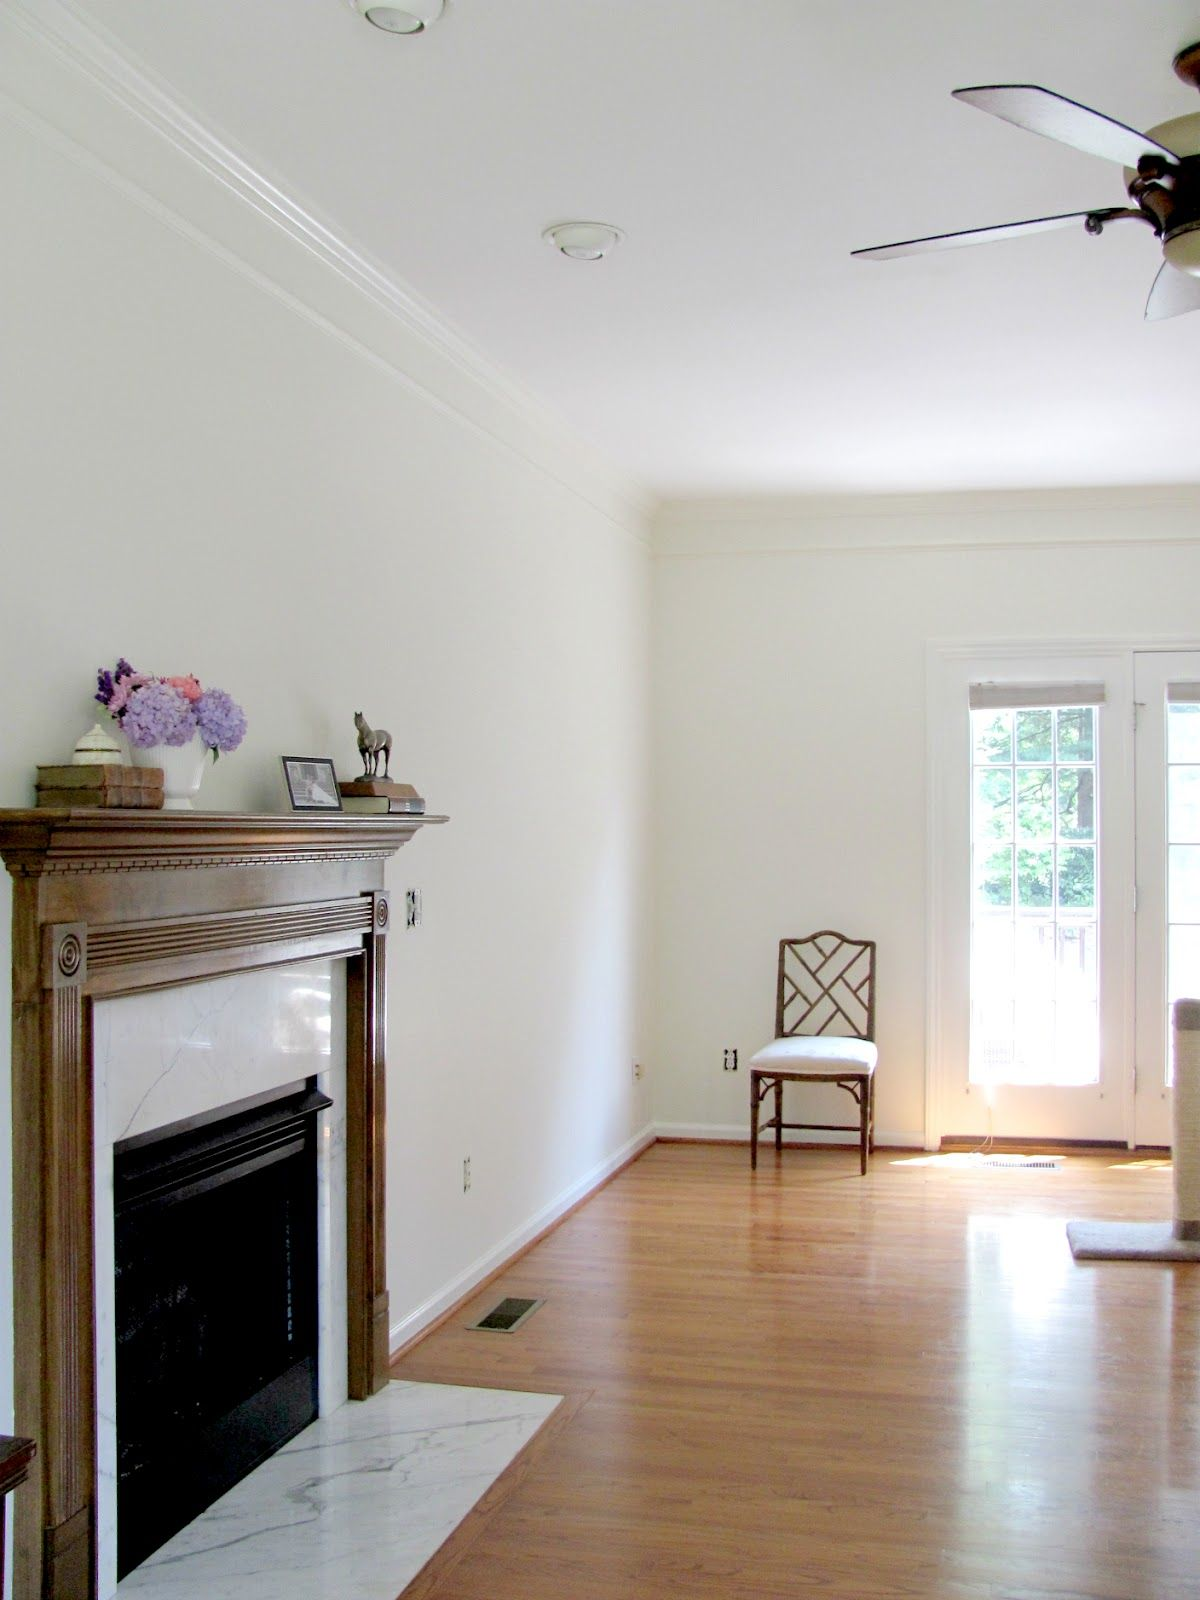 Walls benjamin moore acadia white oc 38 in eggshell crown for Sherwin williams ceiling paint colors